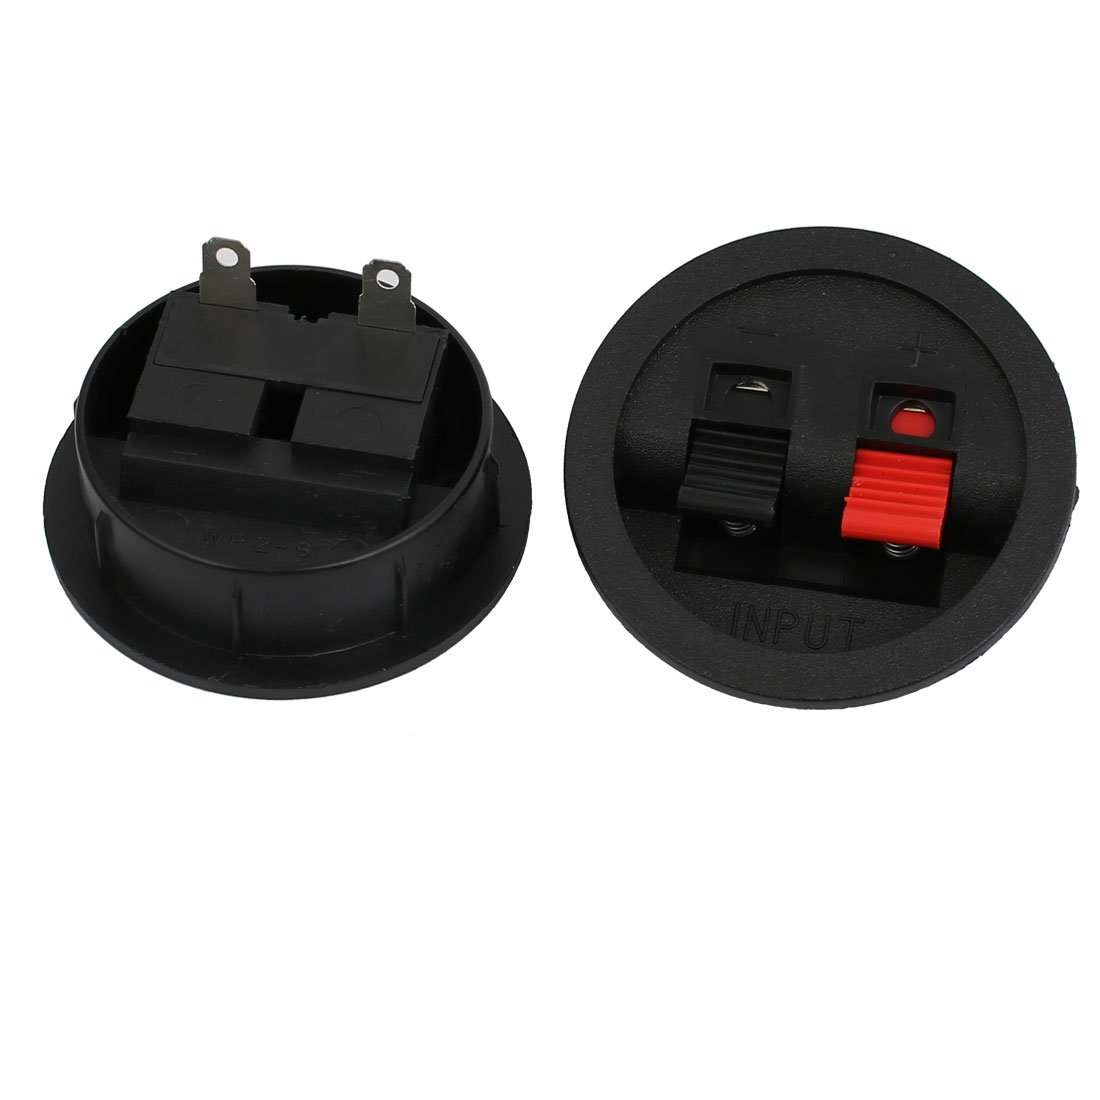 uxcell 2PCS Binding Spring Post Push Type Square Speaker Box Terminal Cup a13111100ux0060